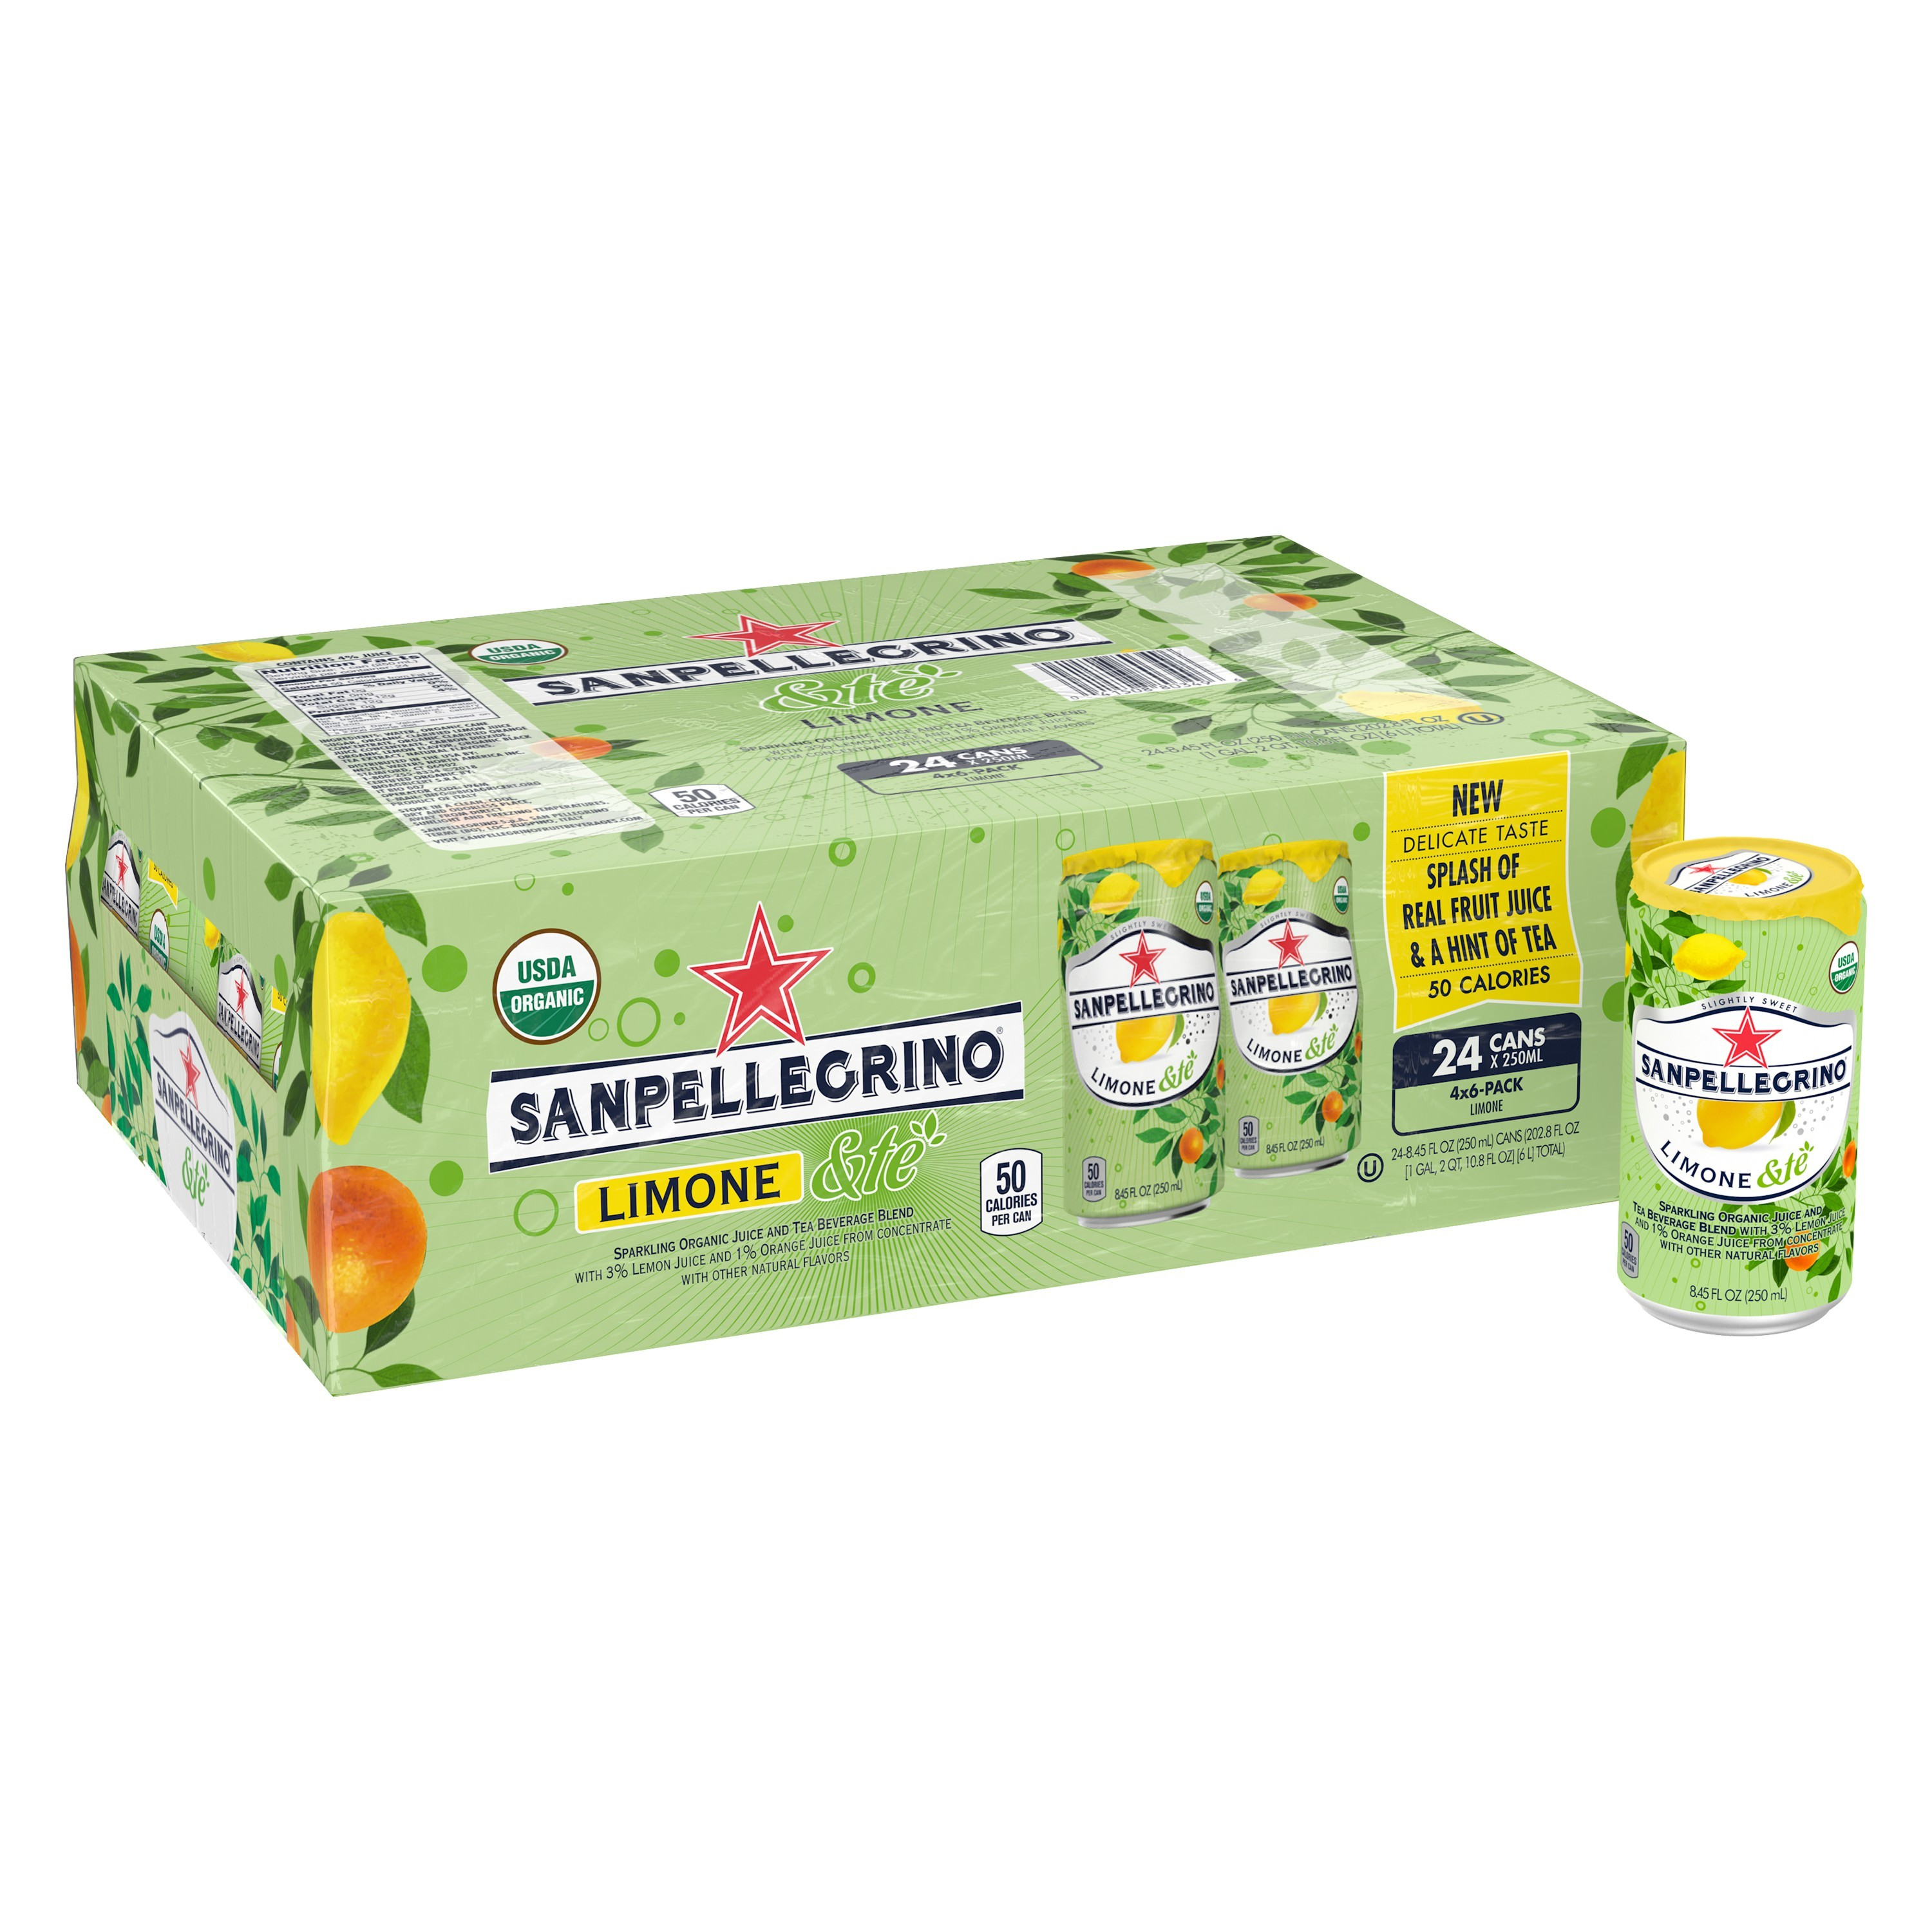 SANPELLEGRINO Limone &te Sparkling Organic Juice and Tea Beverage Blend 24-8.45 fl. oz. Cans